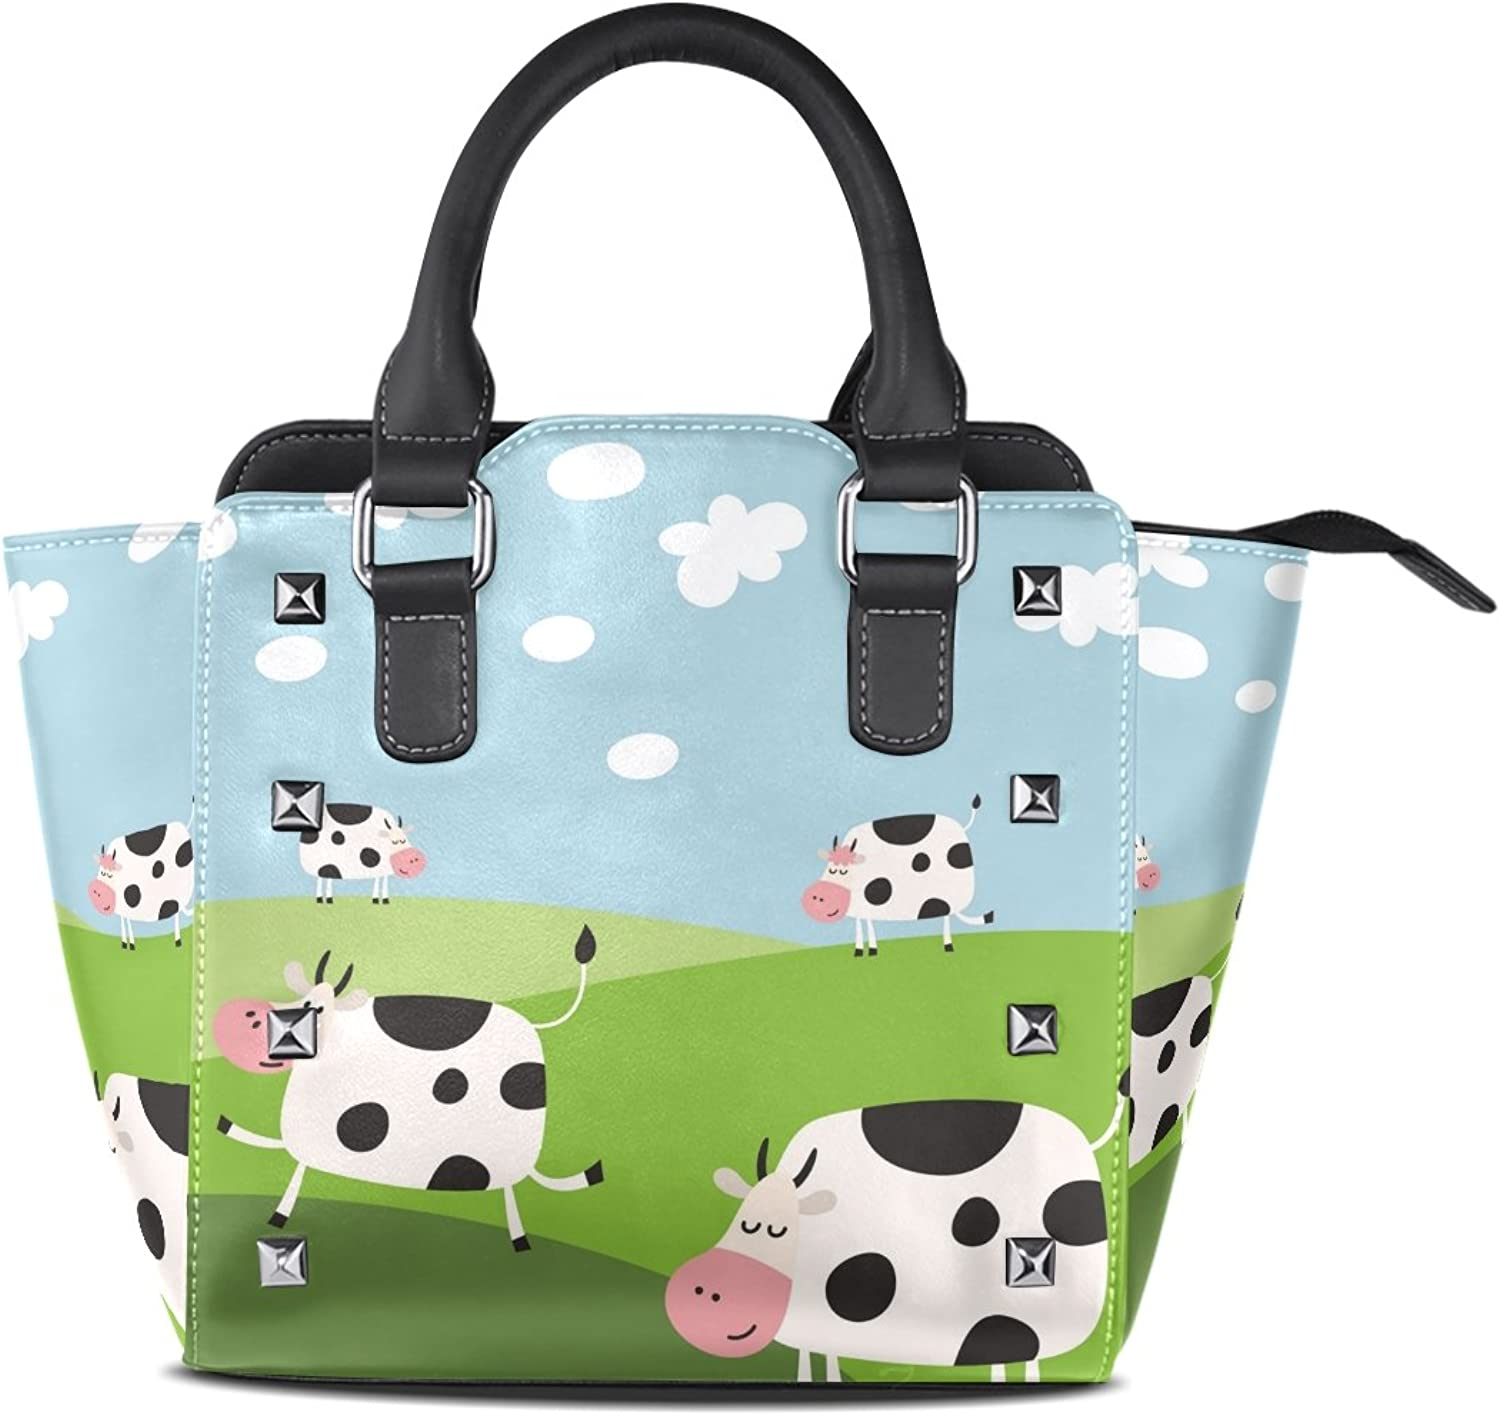 My Little Nest Women's Top Handle Satchel Handbag Cartoon Funny Cow Ladies PU Leather Shoulder Bag Crossbody Bag